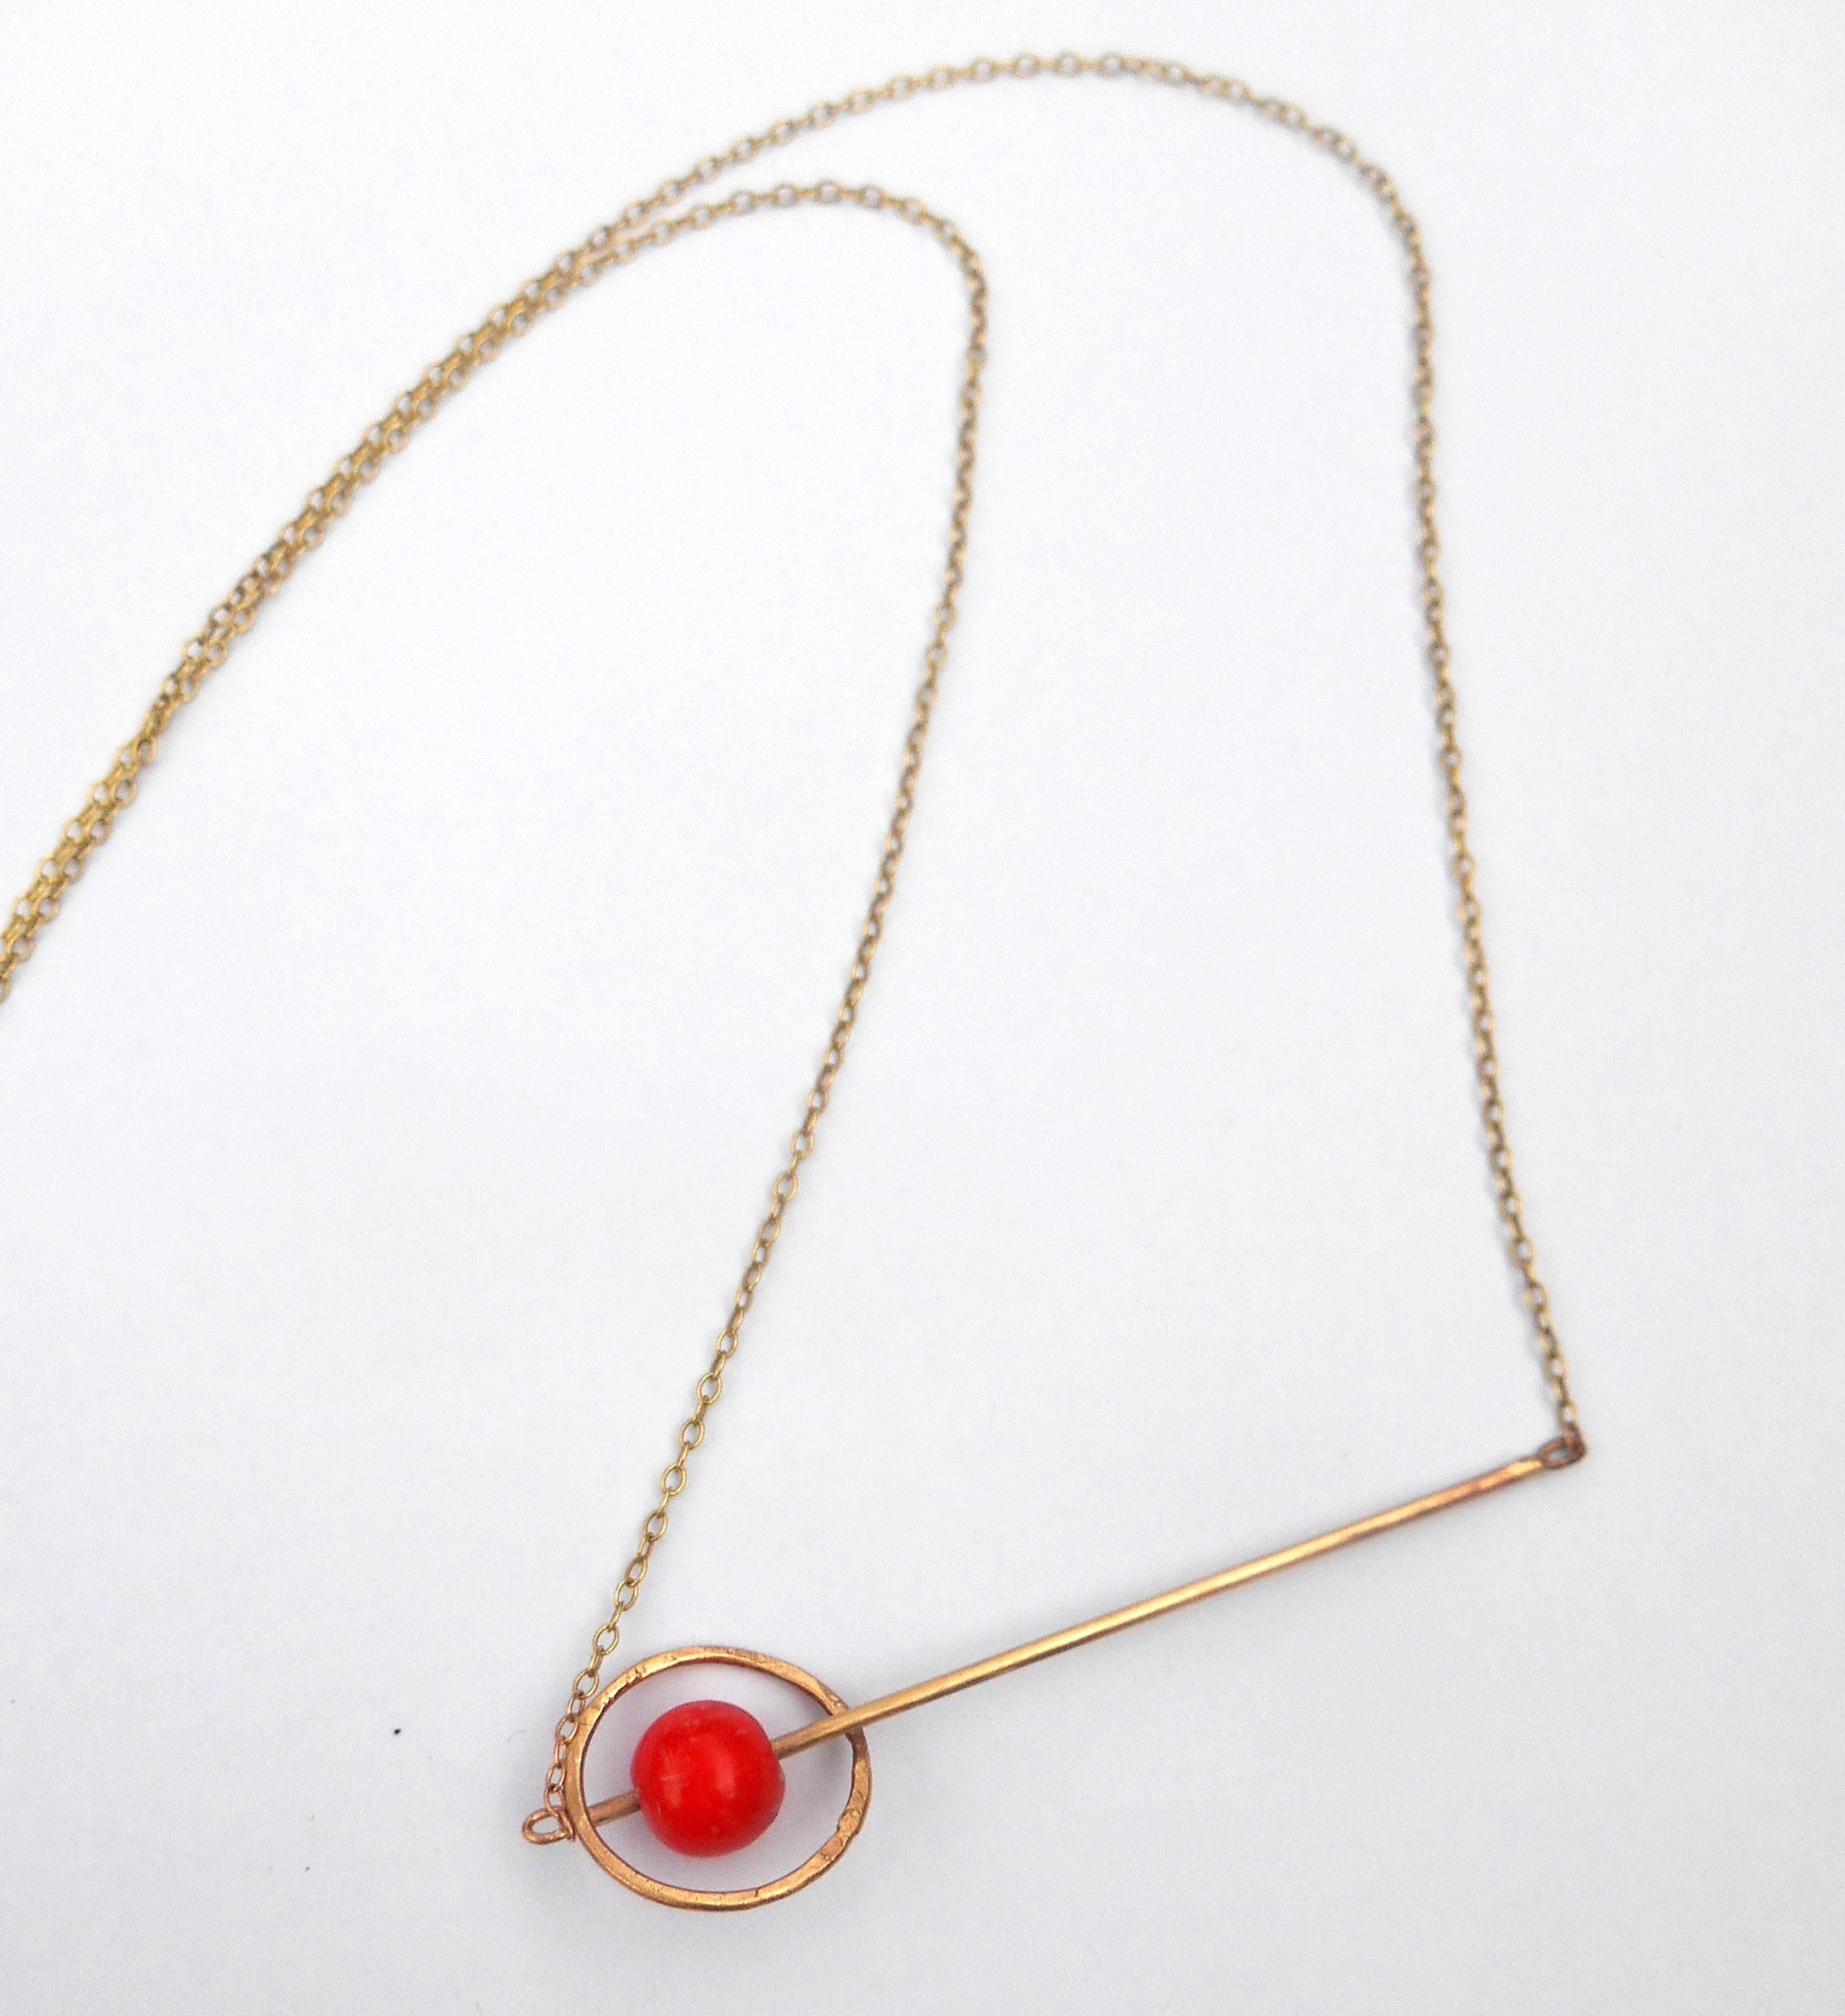 charlotte leftley sea bamboo gold necklace.jpg